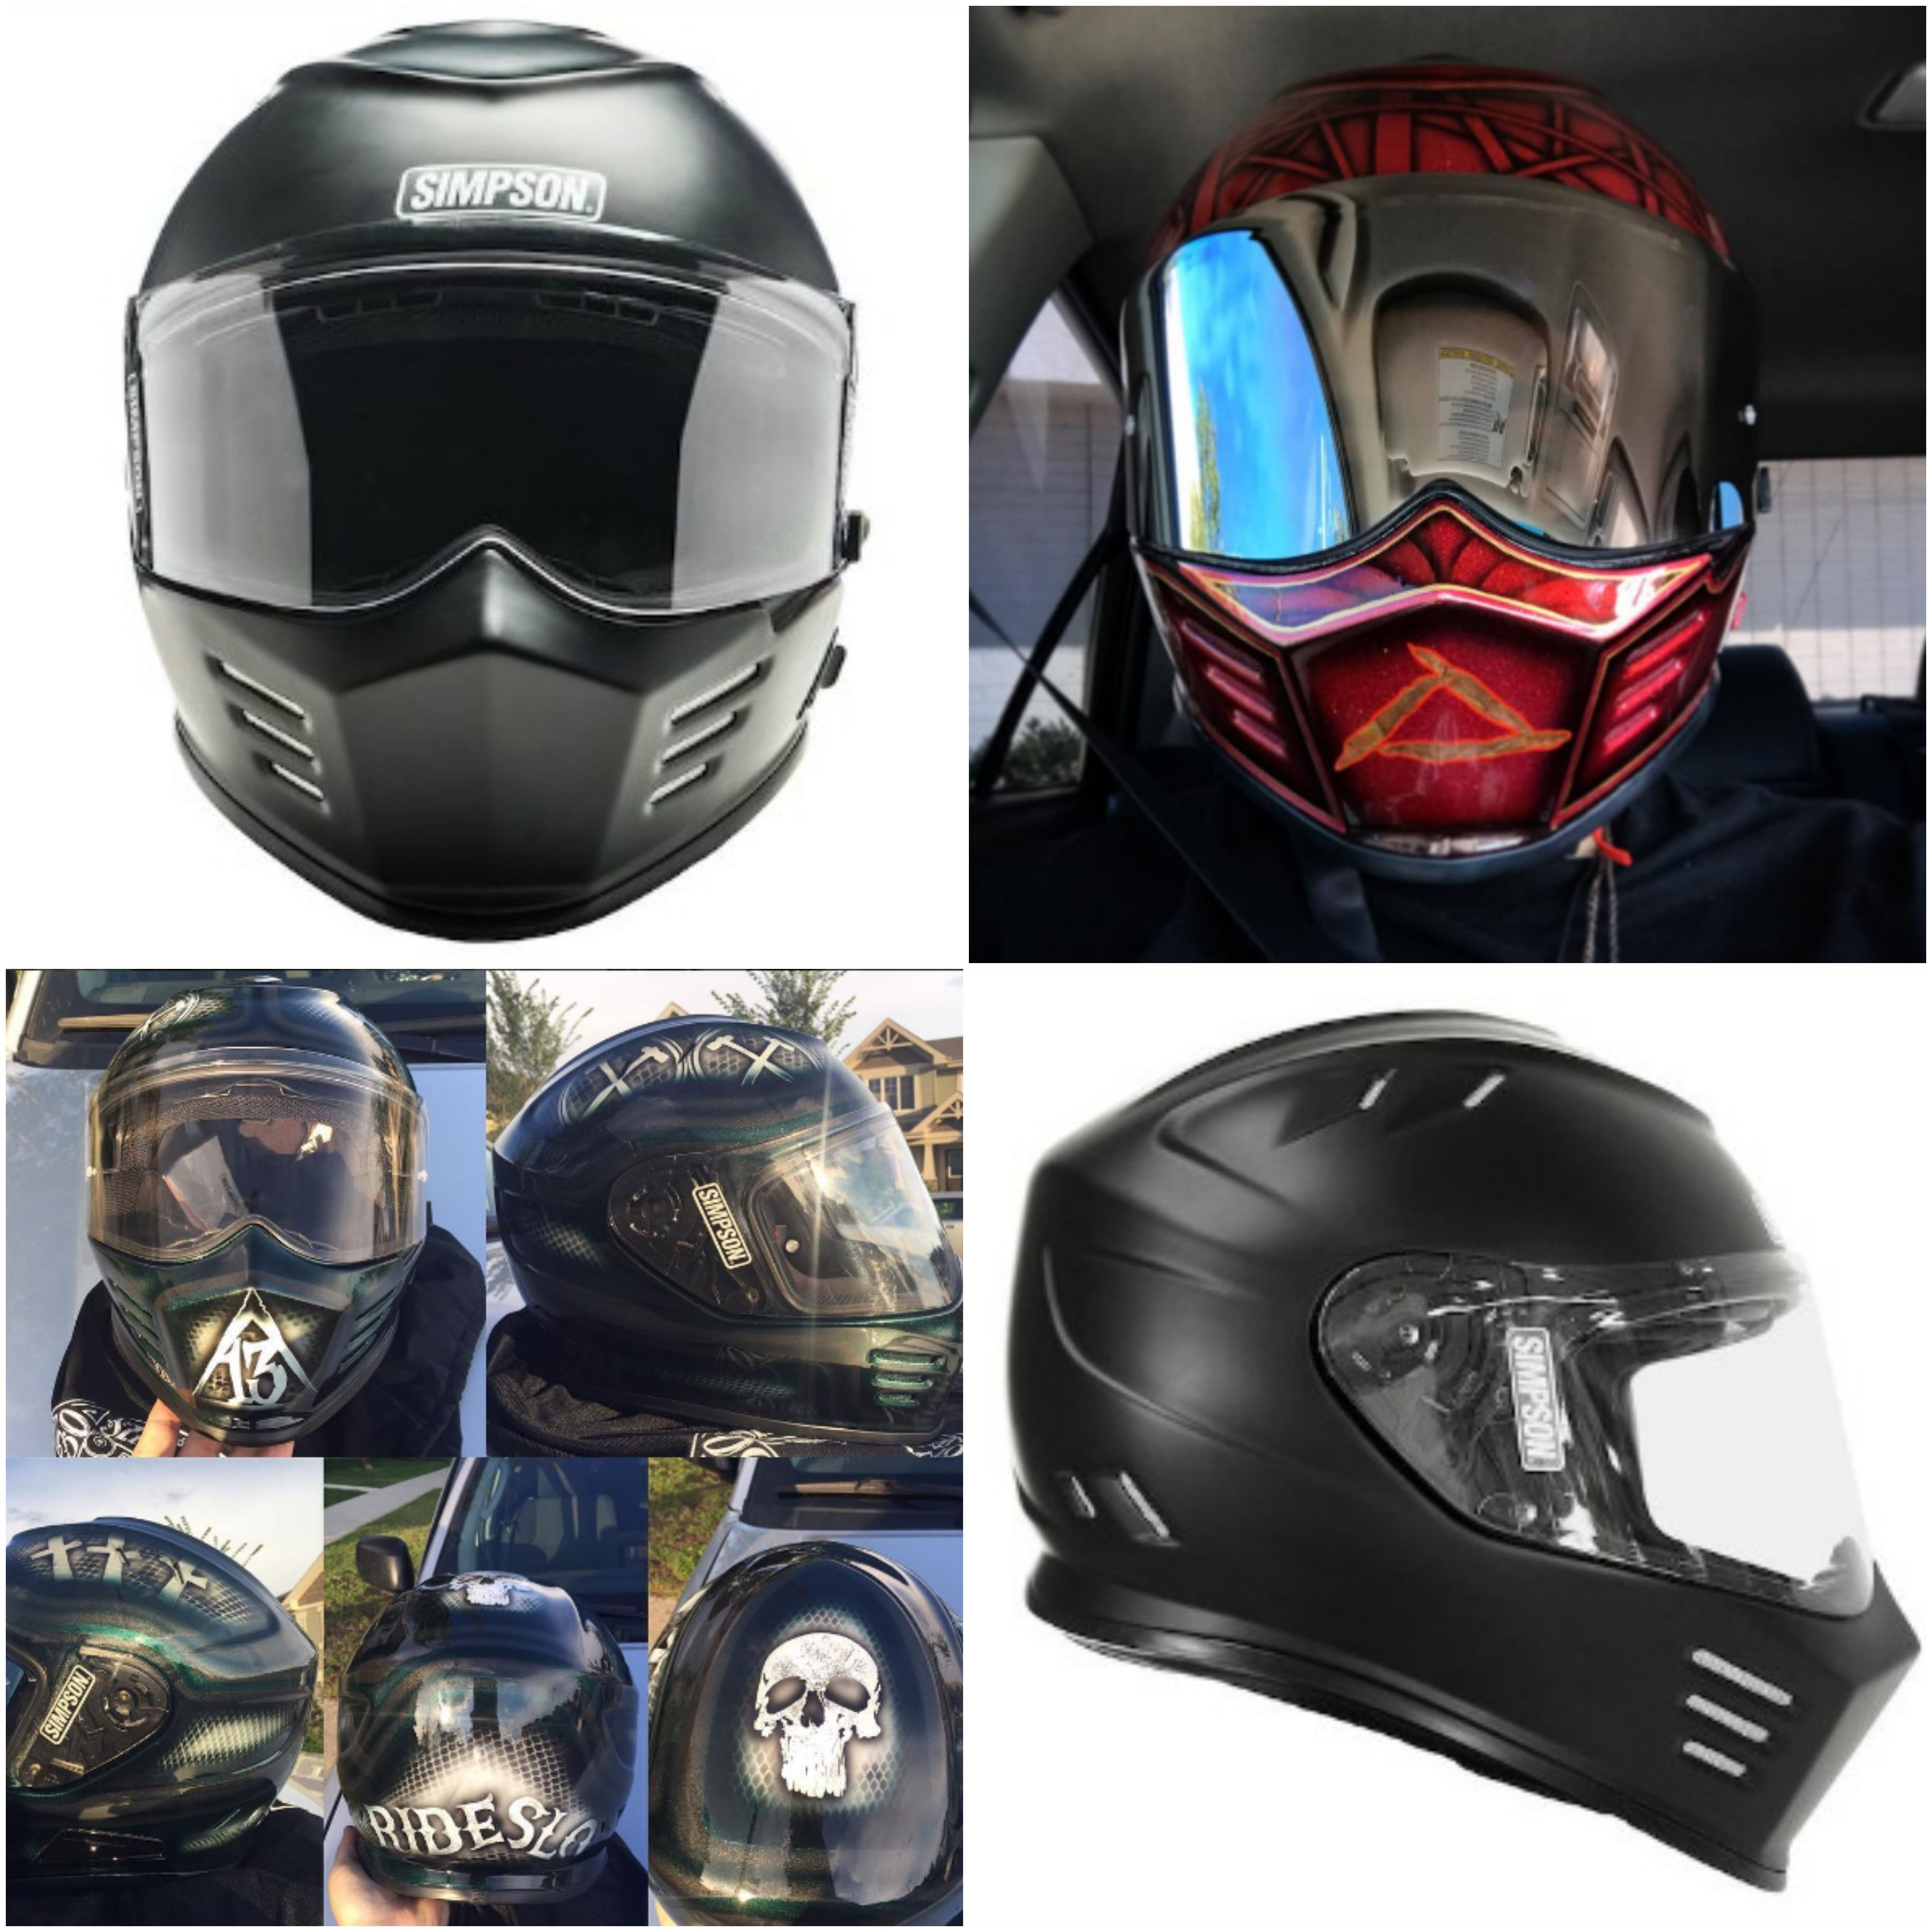 Simpson Ghost Bandit Helmet Review – A Guide To Deciding If This Is ... 3984ff6a11faf